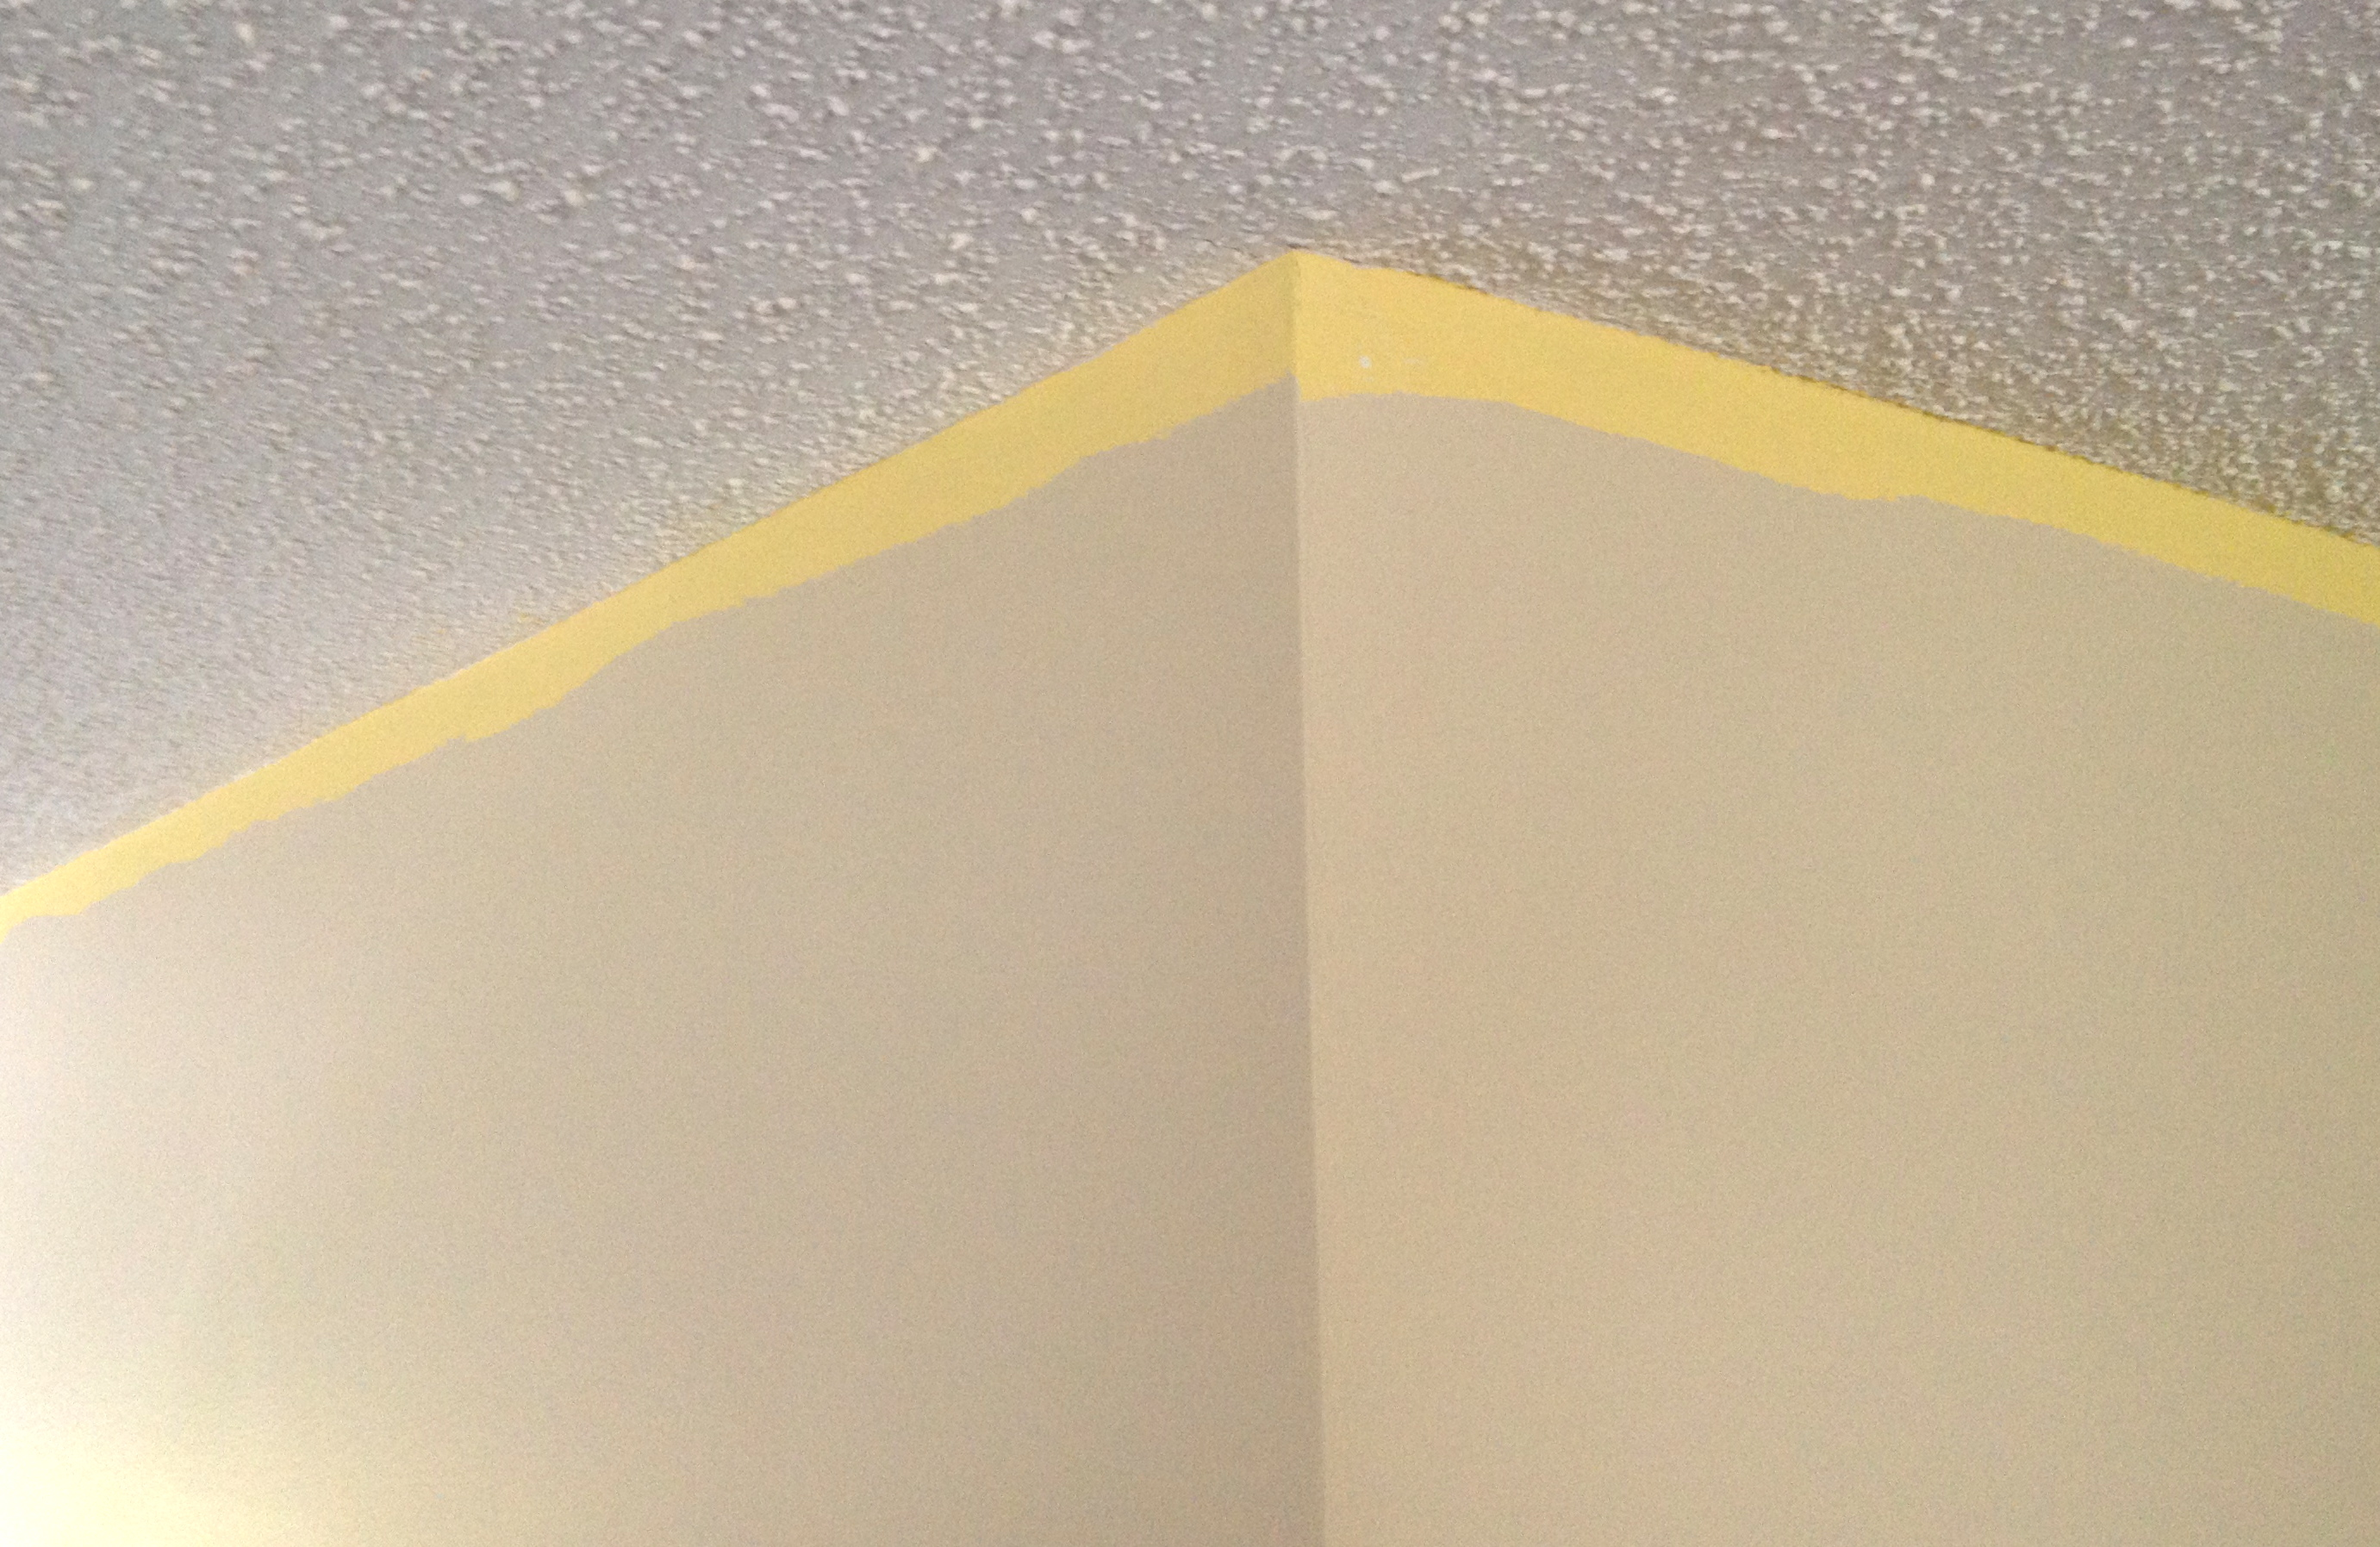 Unpainted top of wall to be covered by crown molding.